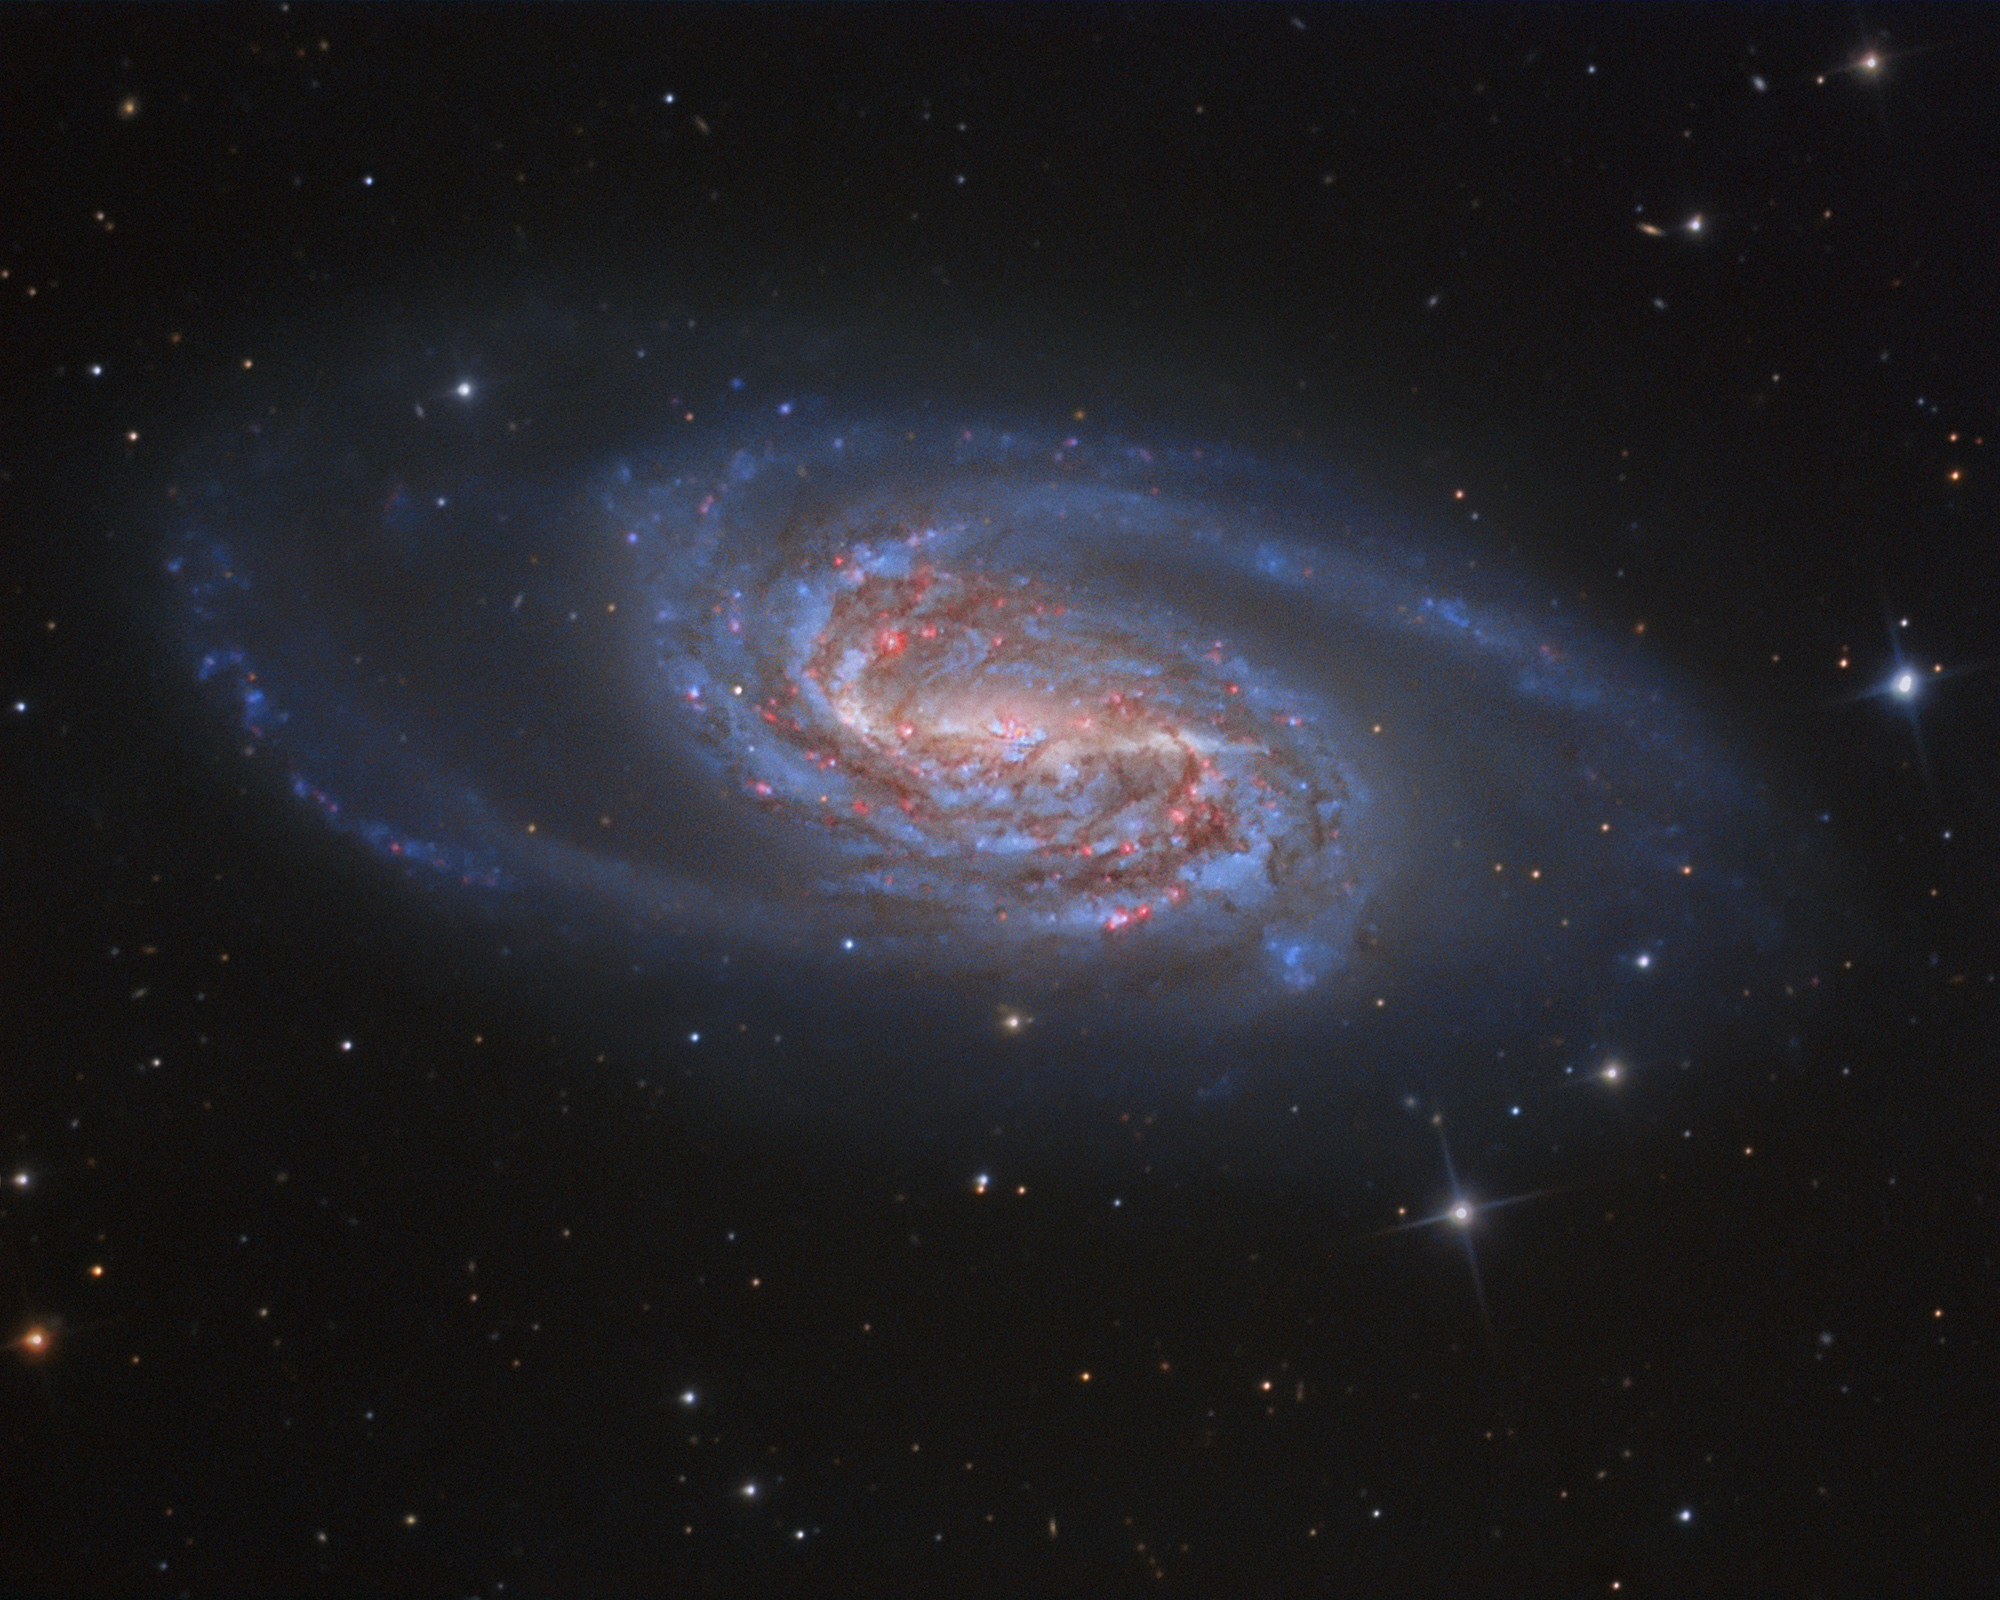 2015 April 10 - NGC 2903: A Missing Jewel in Leo